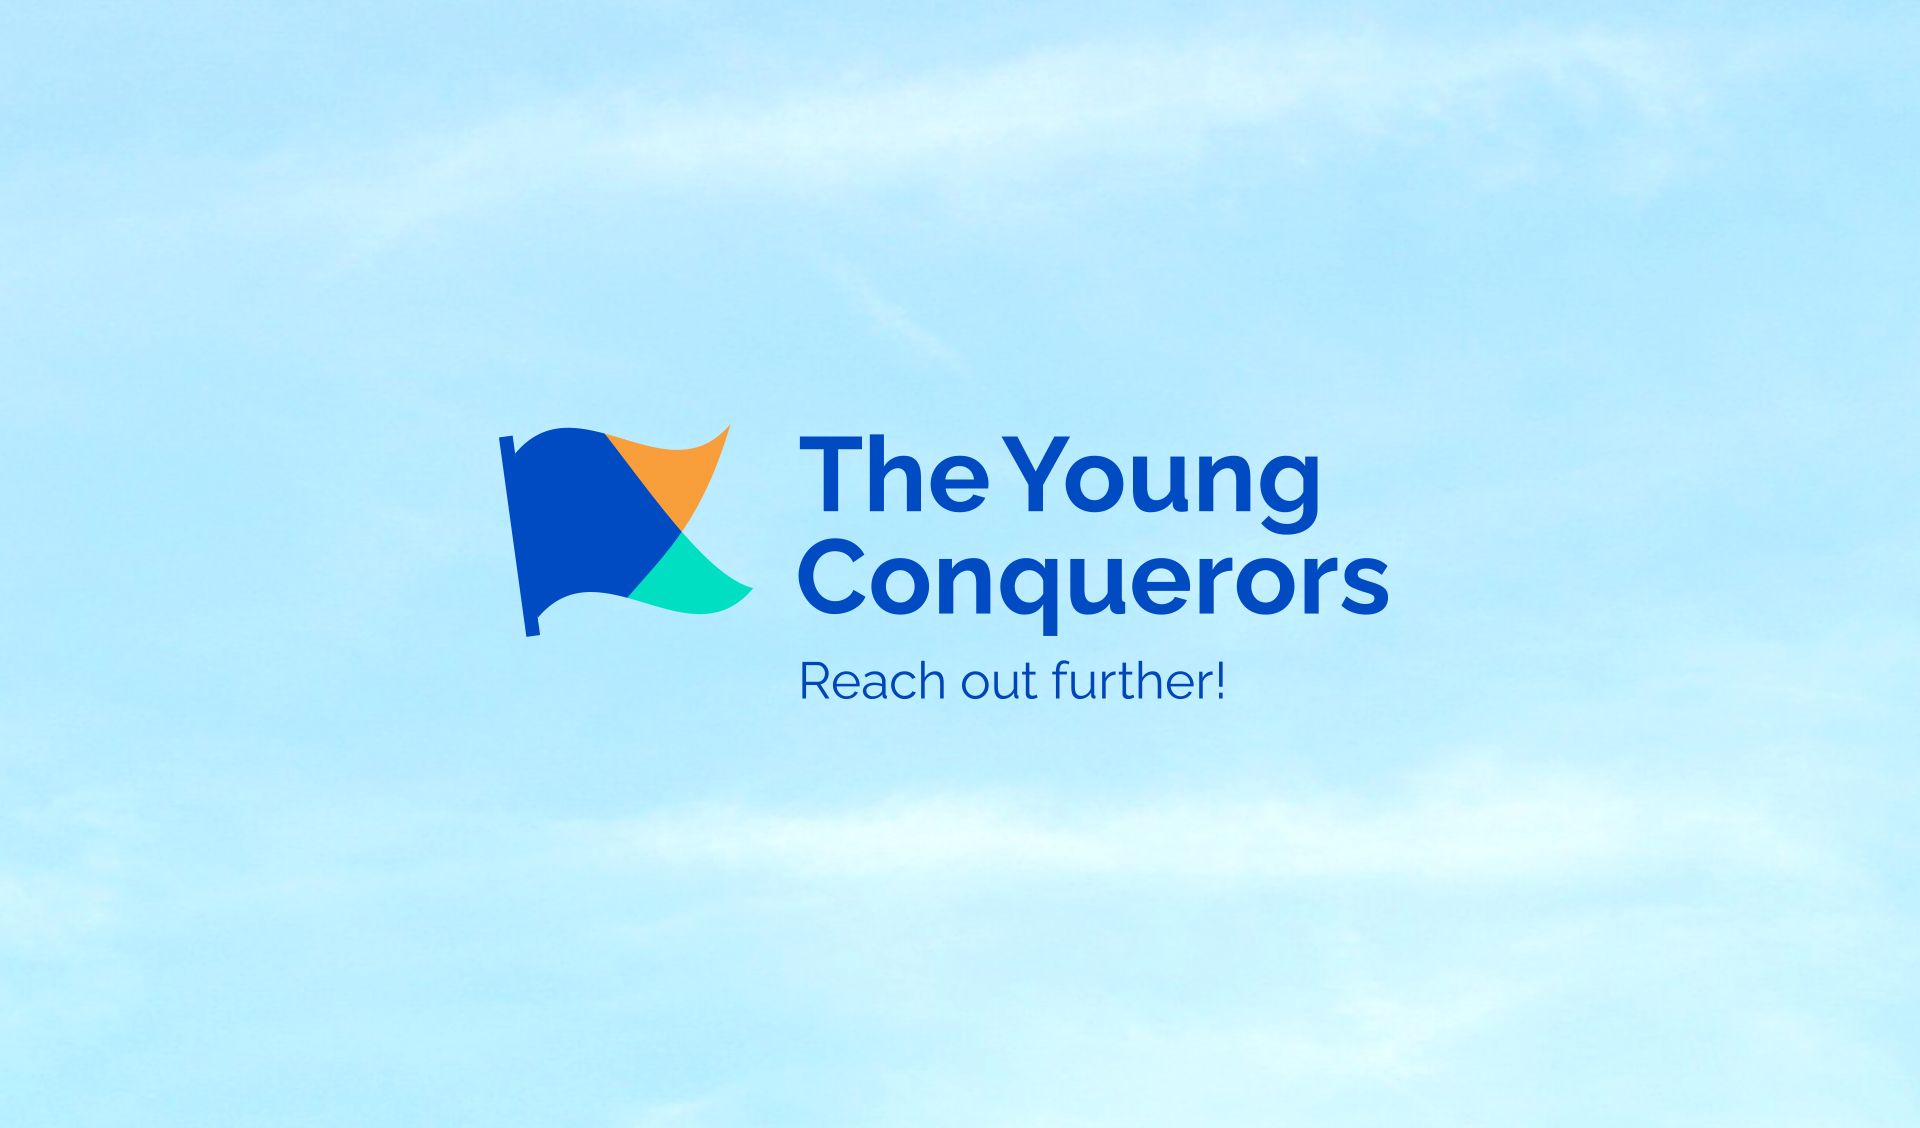 The Young Conquerors Visual Identity by Xuan Cuong Do